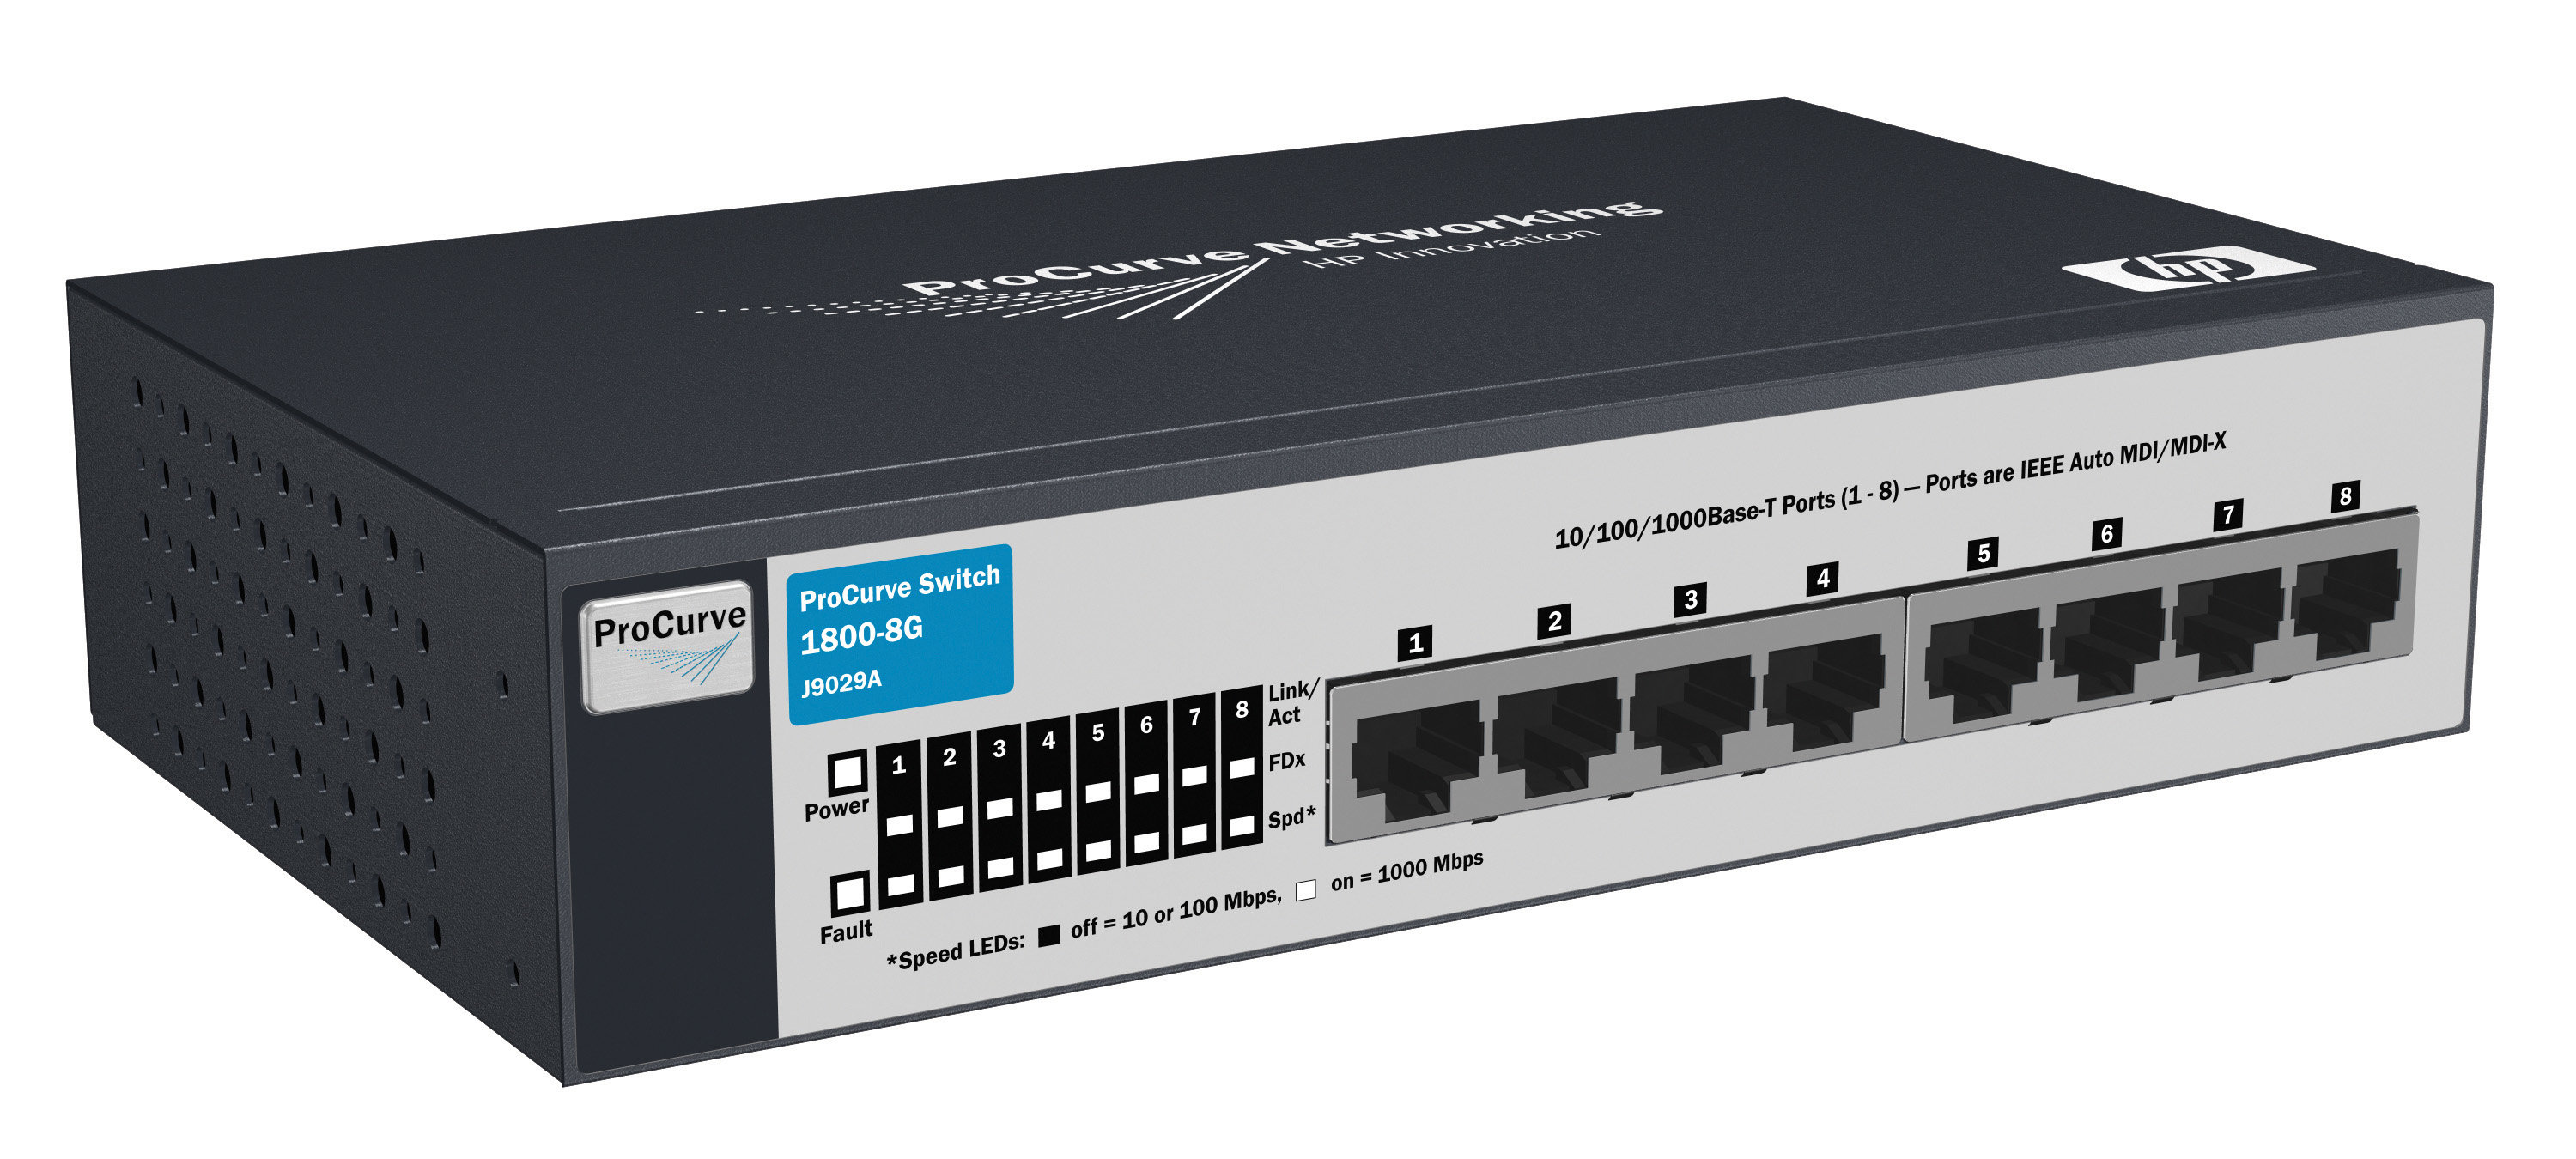 HP ProCurve Switch 1800-8G - switch - 8 ports